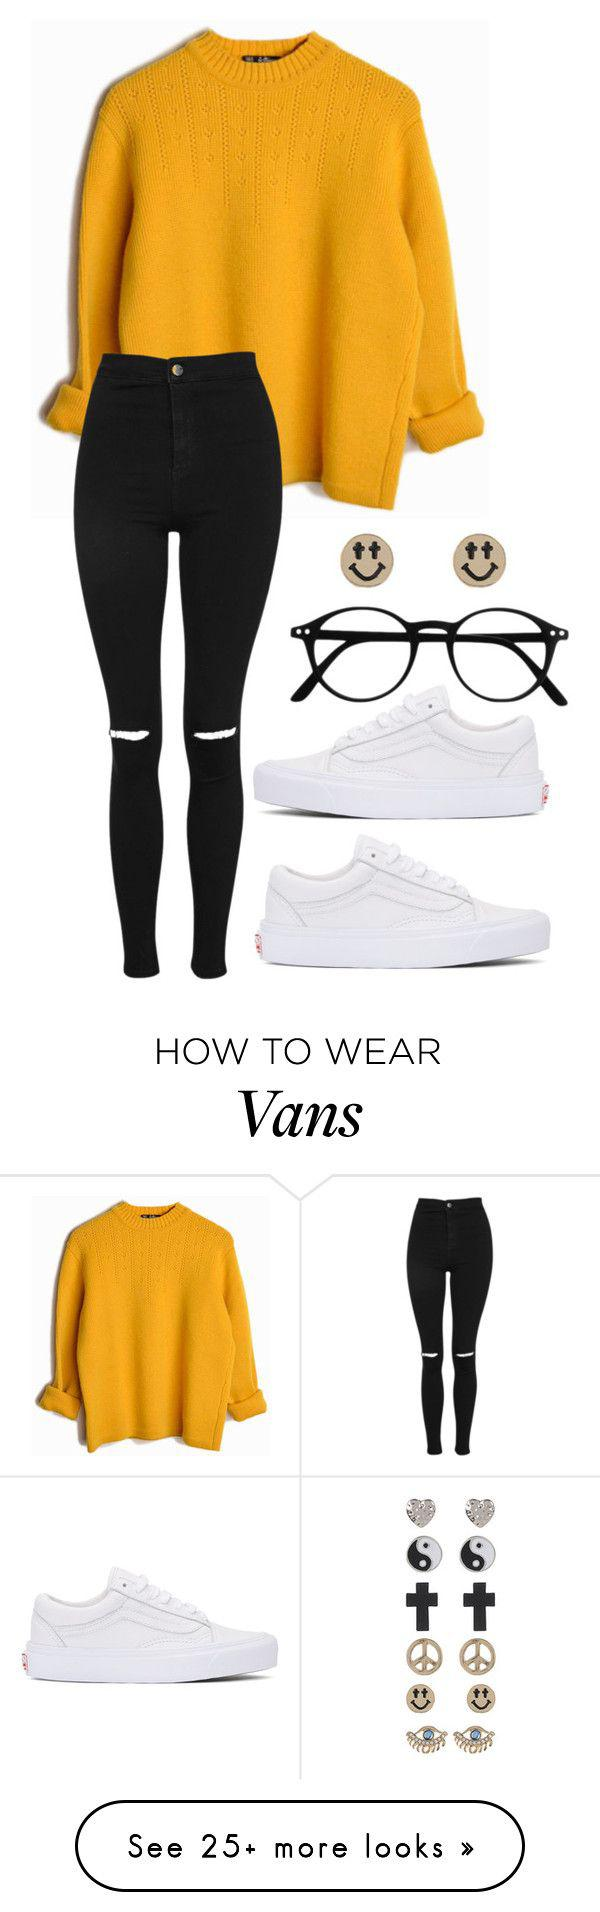 """What To Wear With Black Jeans : """"Sunday morning rain is falling"""" by freedom2095 on P ..."""